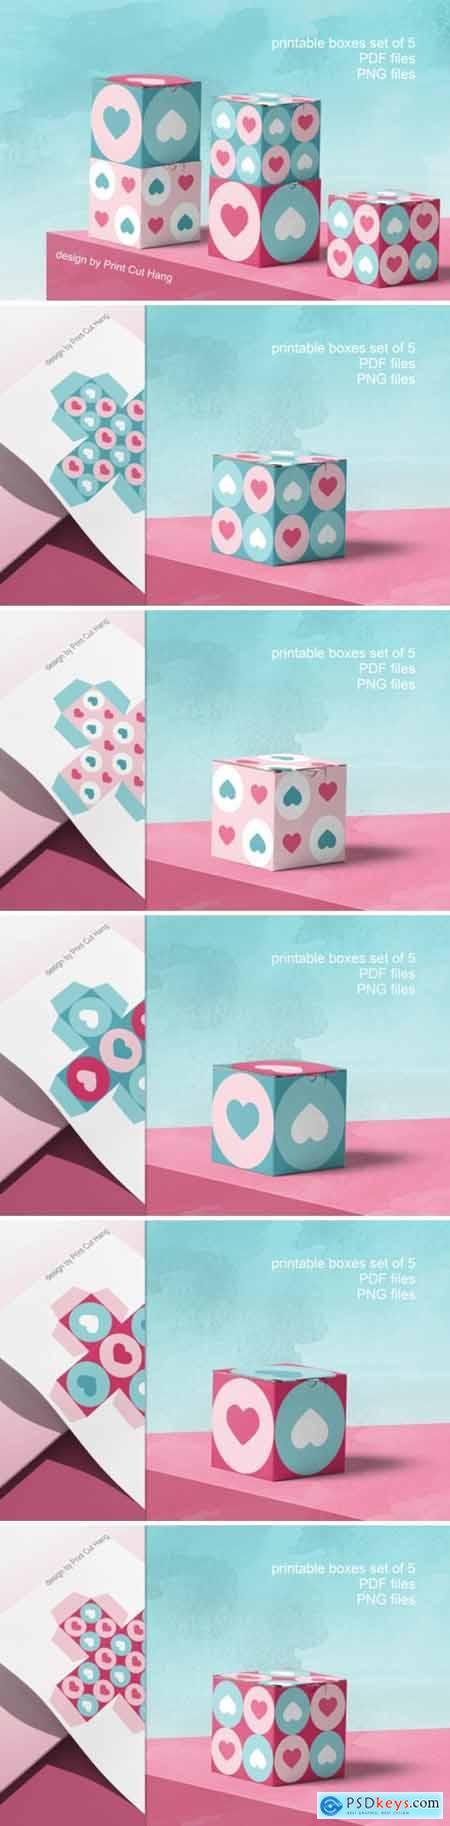 Printable Boxes for Valentine Gifts PDF 3783483